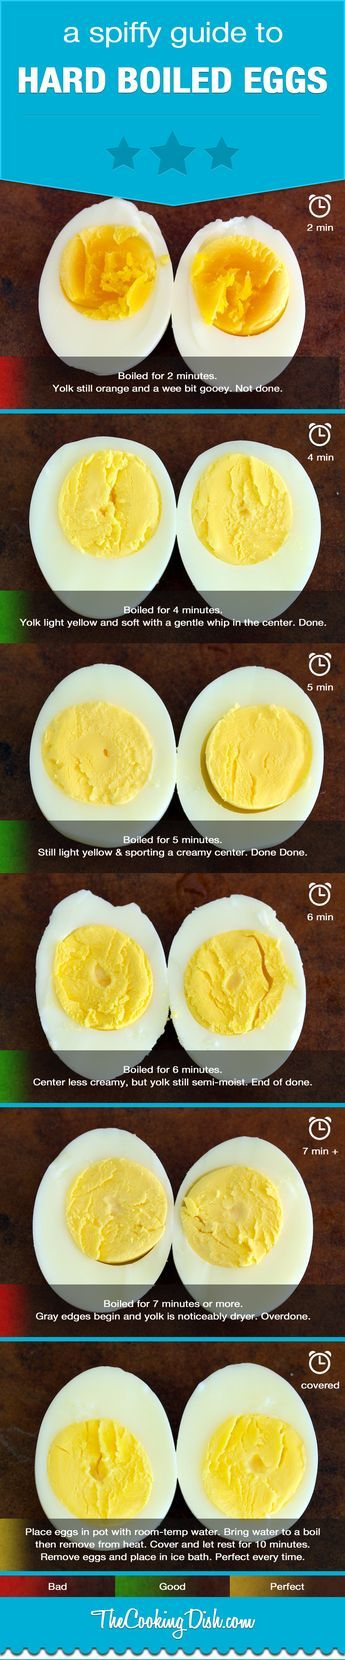 How to hard boil an egg. Did you know that most people overcook their eggs?